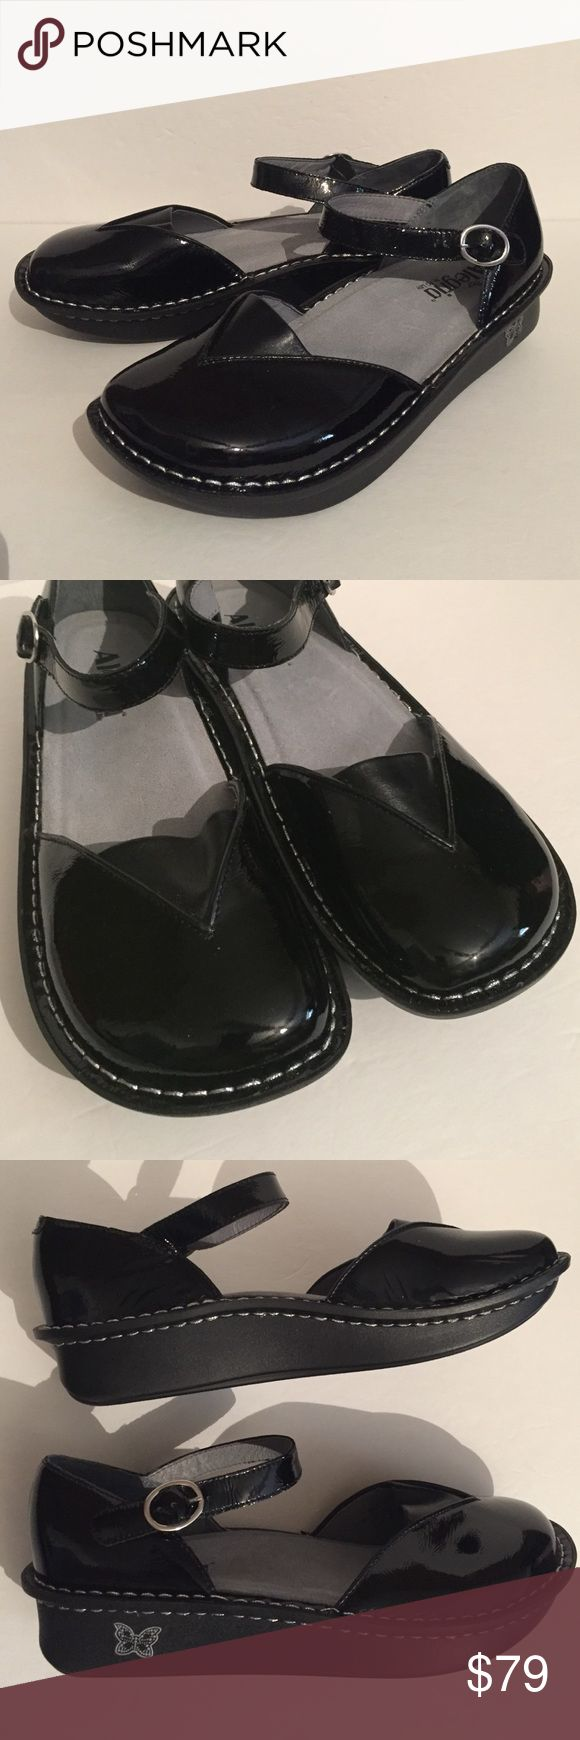 Beautiful Alegria black patent leather shoes!! This is a pair of black Alegria patent leather maryjane shoes. These are very comfortable and have a triangle of soft leather across the top of the shoe for comfort. They also have leather interior lining. They were tried on once and are in excellent condition. Sz 11 (41). Alegria Shoes Flats & Loafers